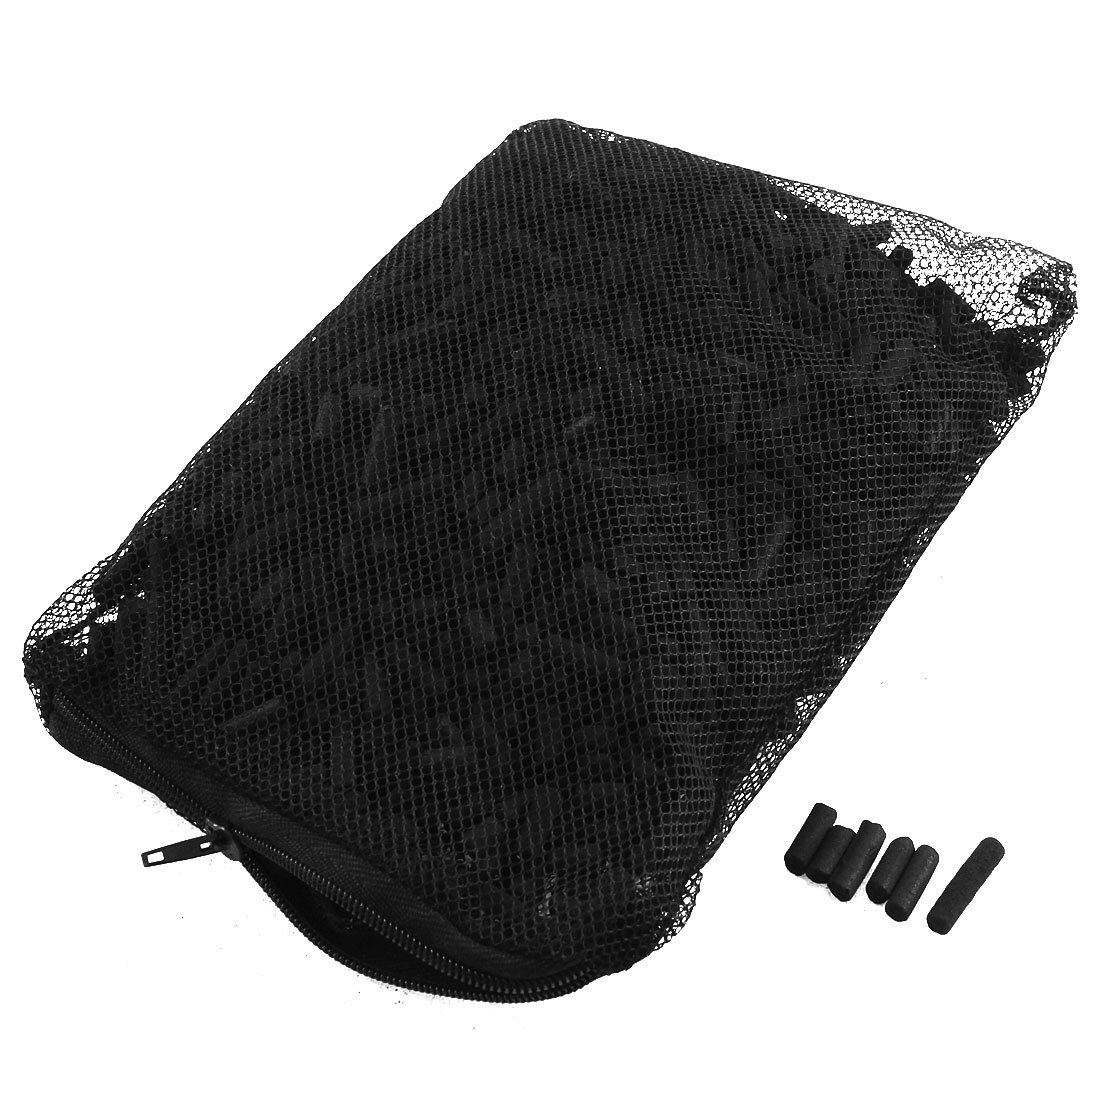 500g 4.8mm Dia Aquarium Activated Carbon Pond Canister Filter w Mesh Bag for Fish Tank Fishbowl